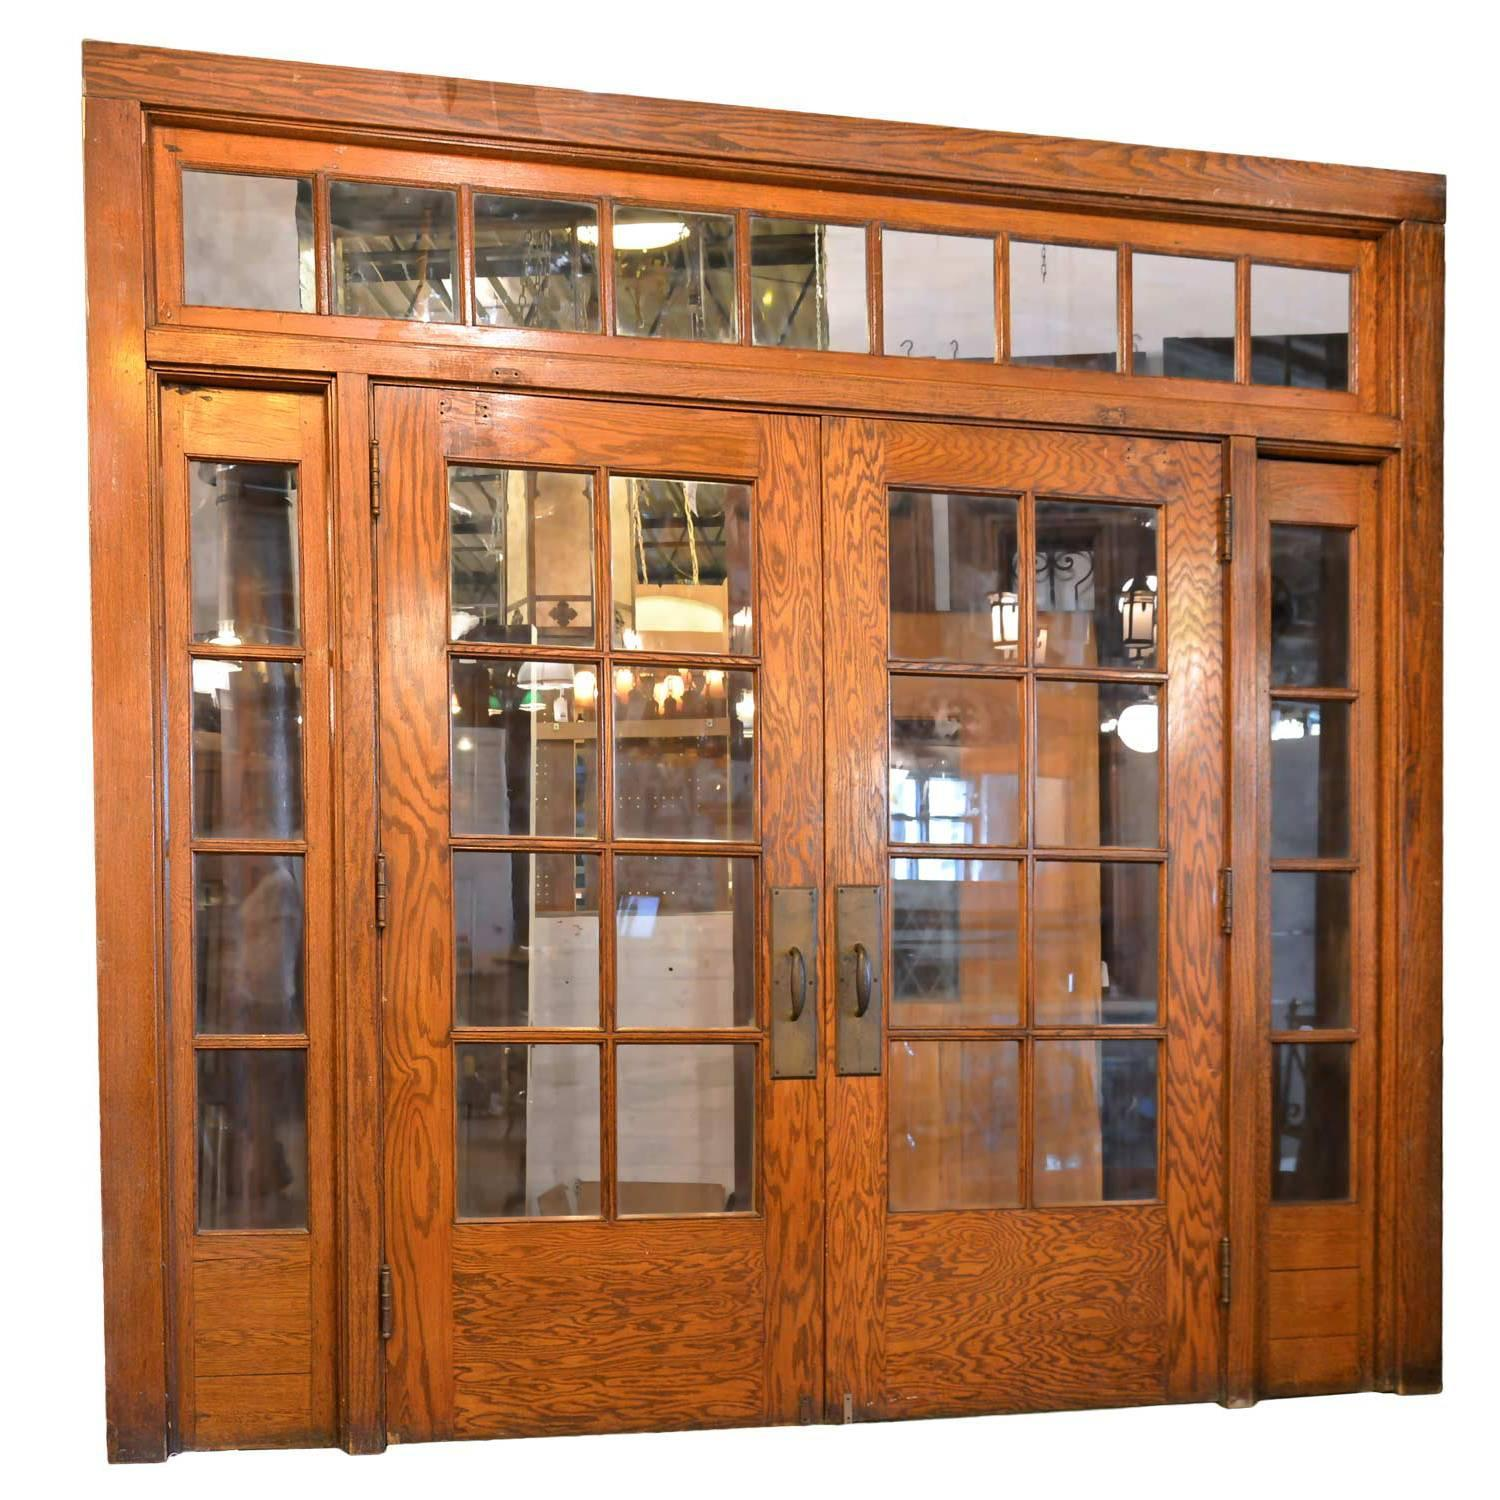 1500 #B05216 Beautiful Oak Double Door Set With Transom And Sidelights At 1stdibs pic Entry Doors With Transom 40411500